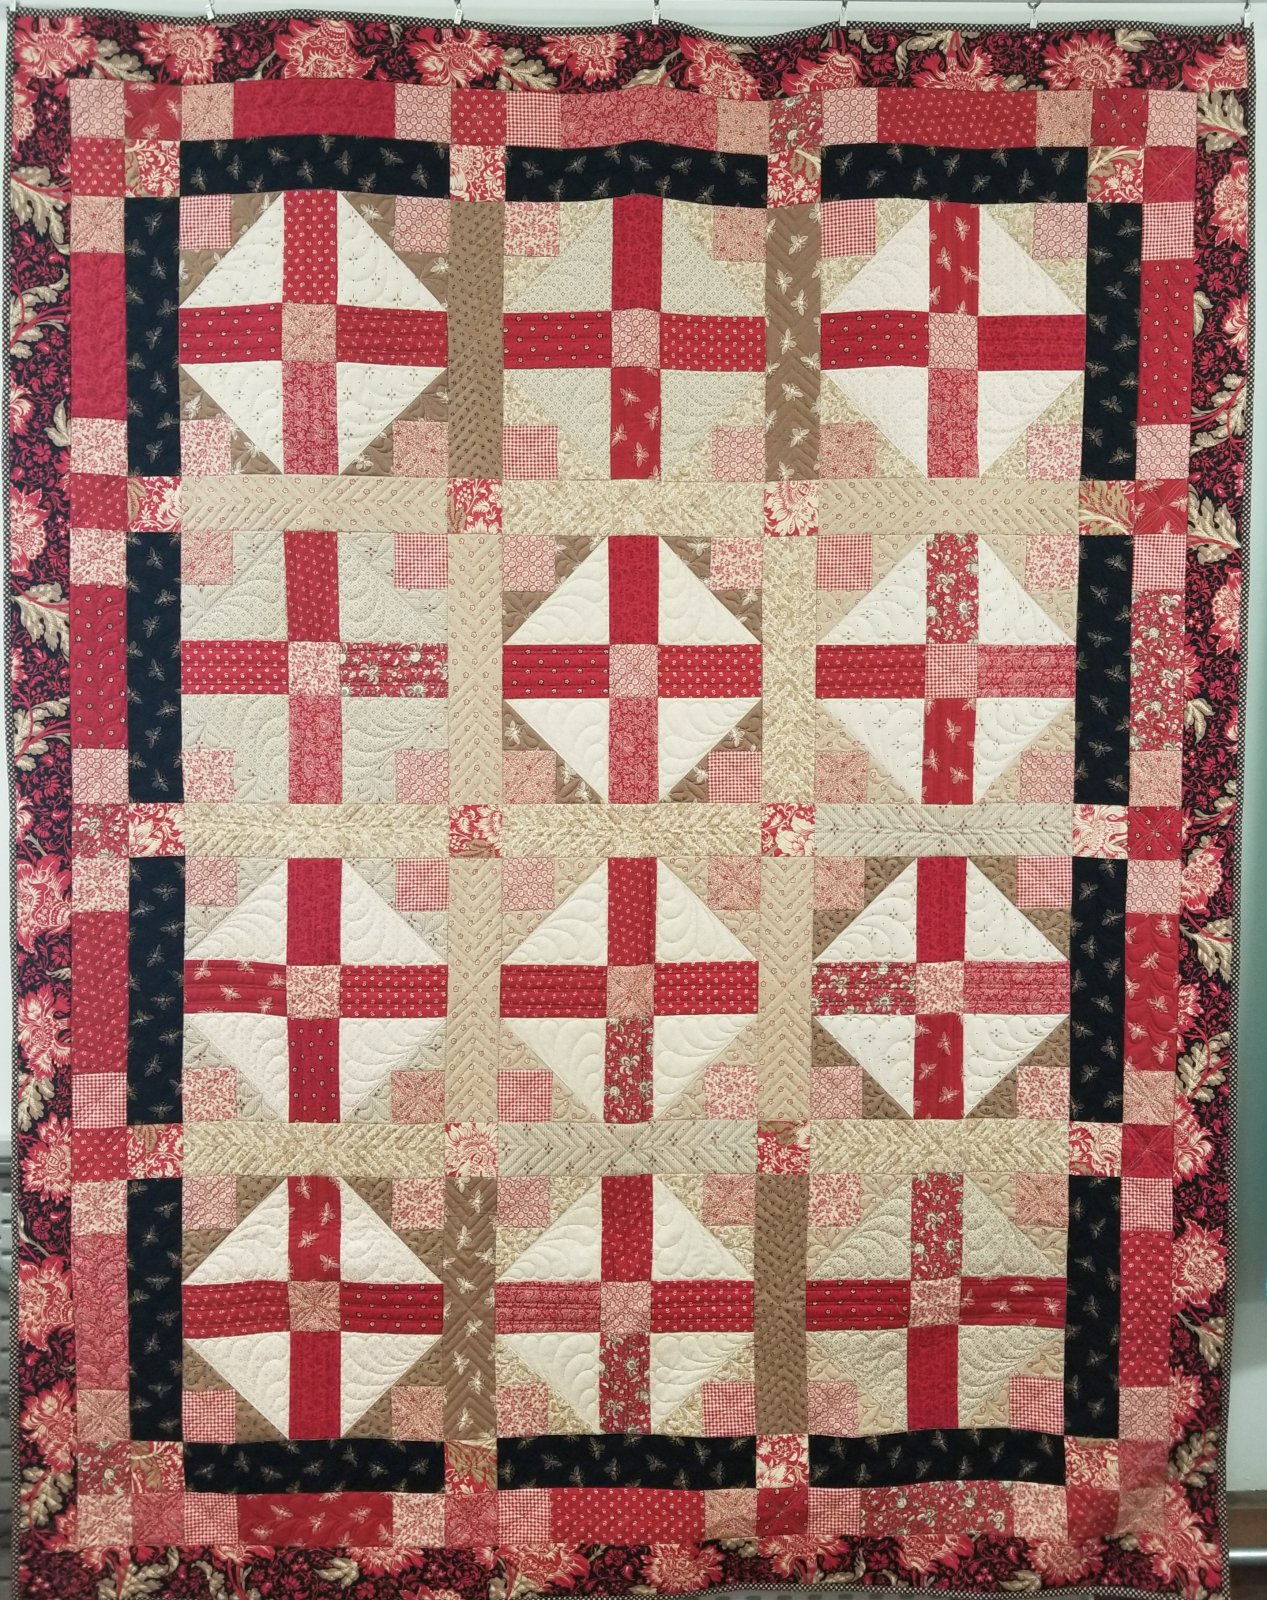 Quilt Sampler Fall 2019 Red Beehive Fabric Kit